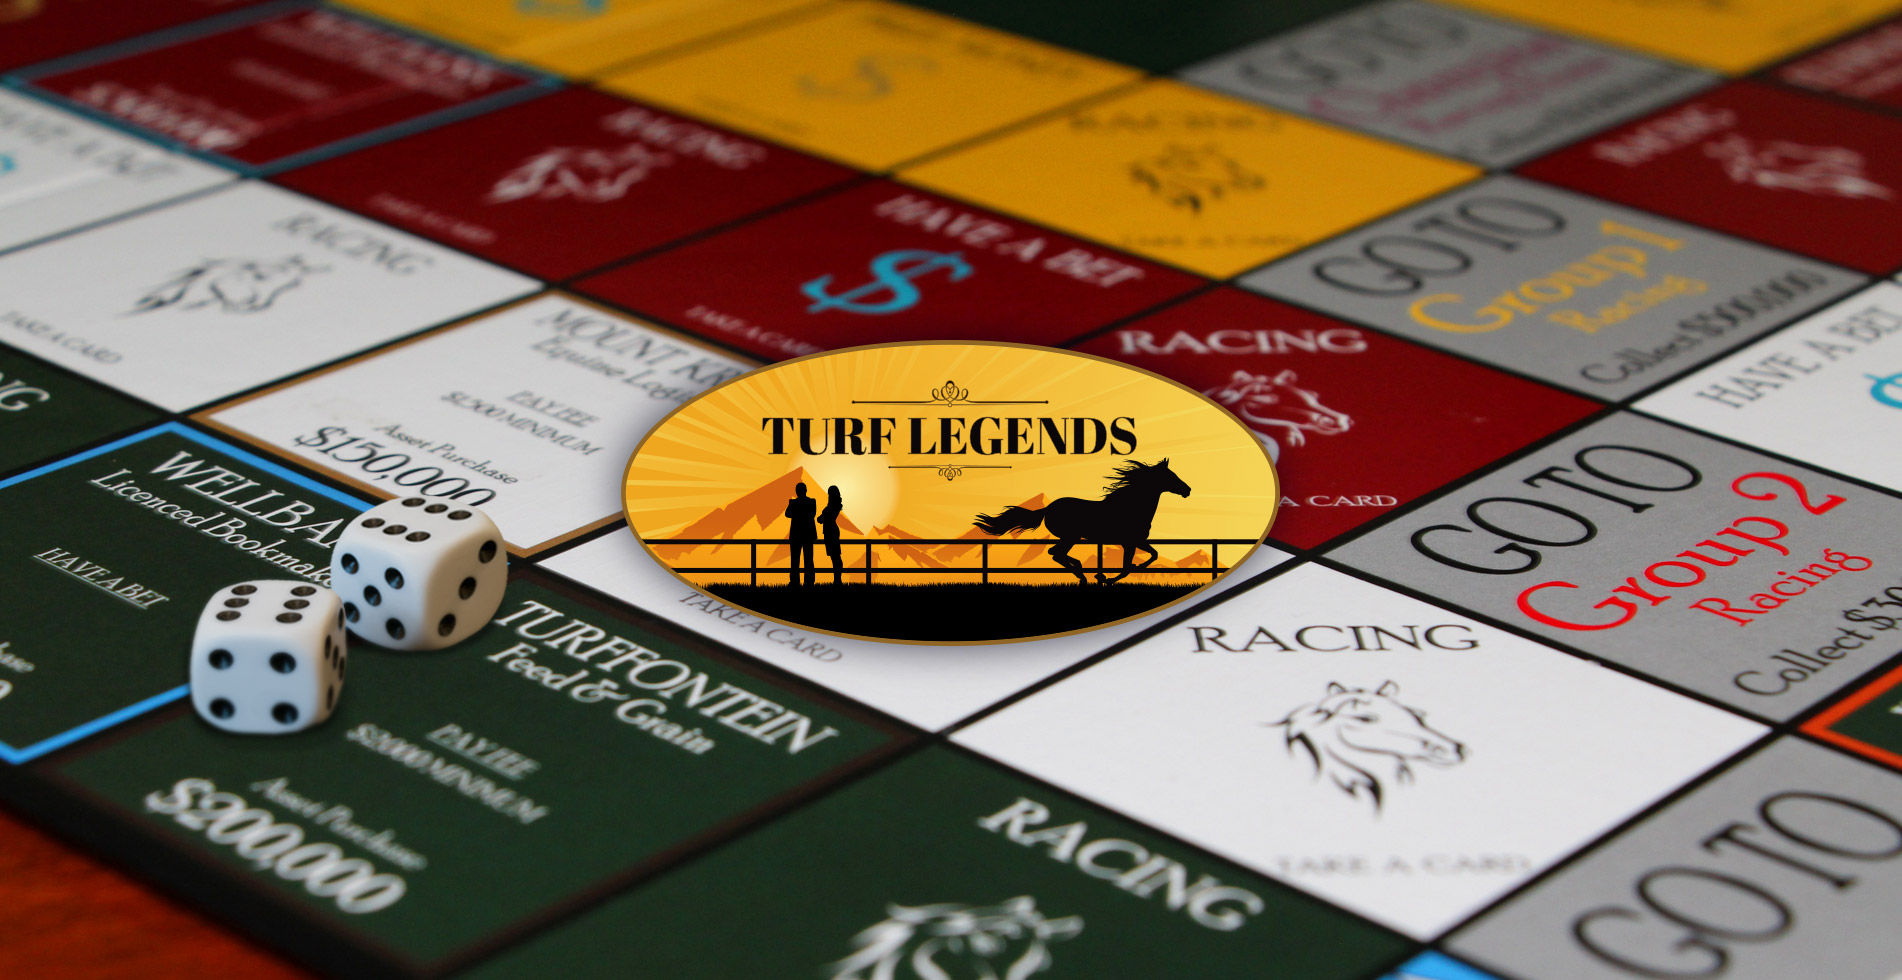 Turf Legends Board Game